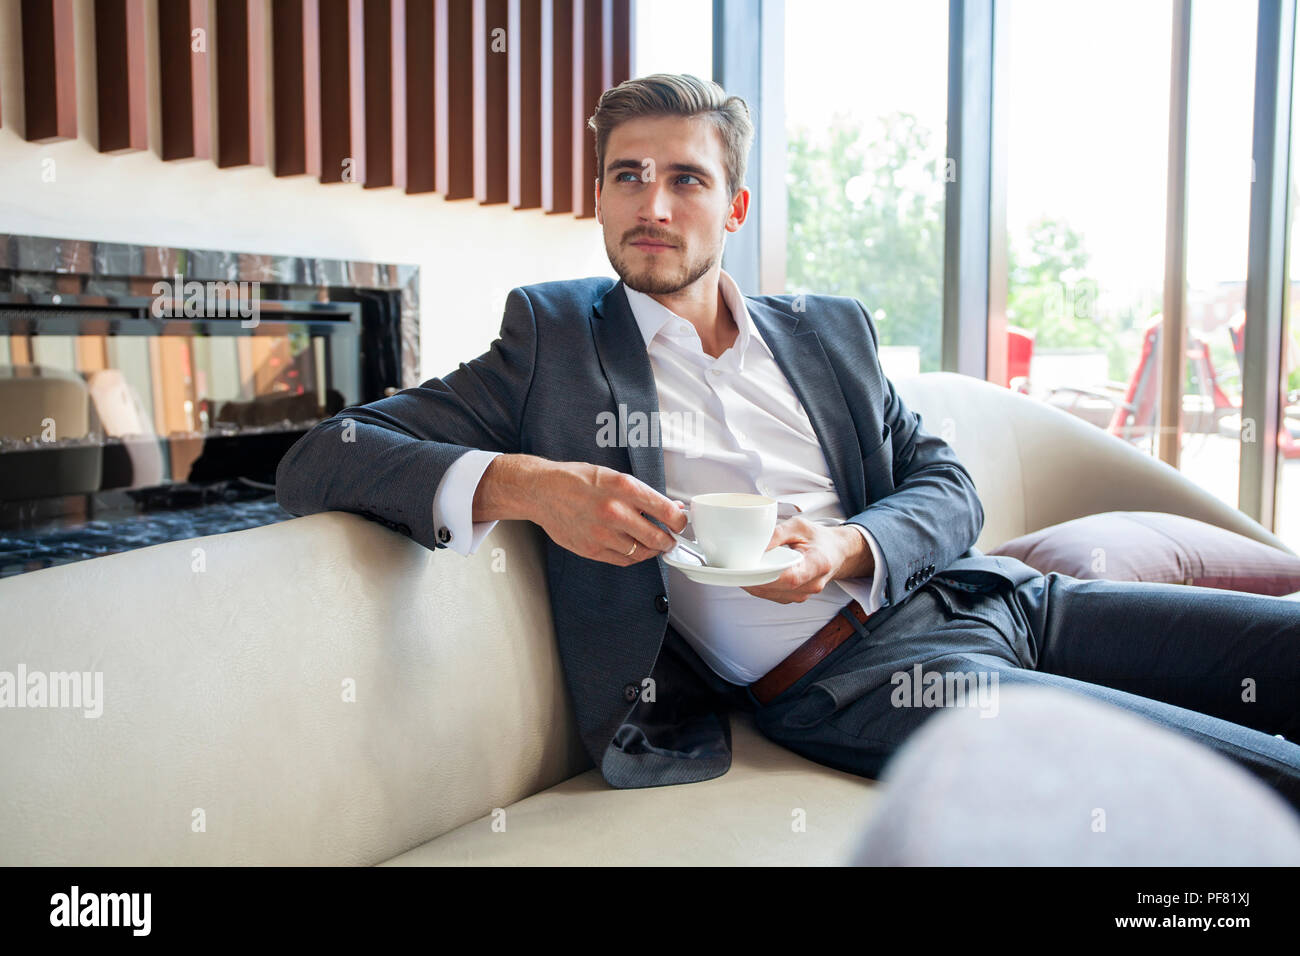 Portrait of happy young businessman sitting on sofa in hotel lobby. Stock Photo